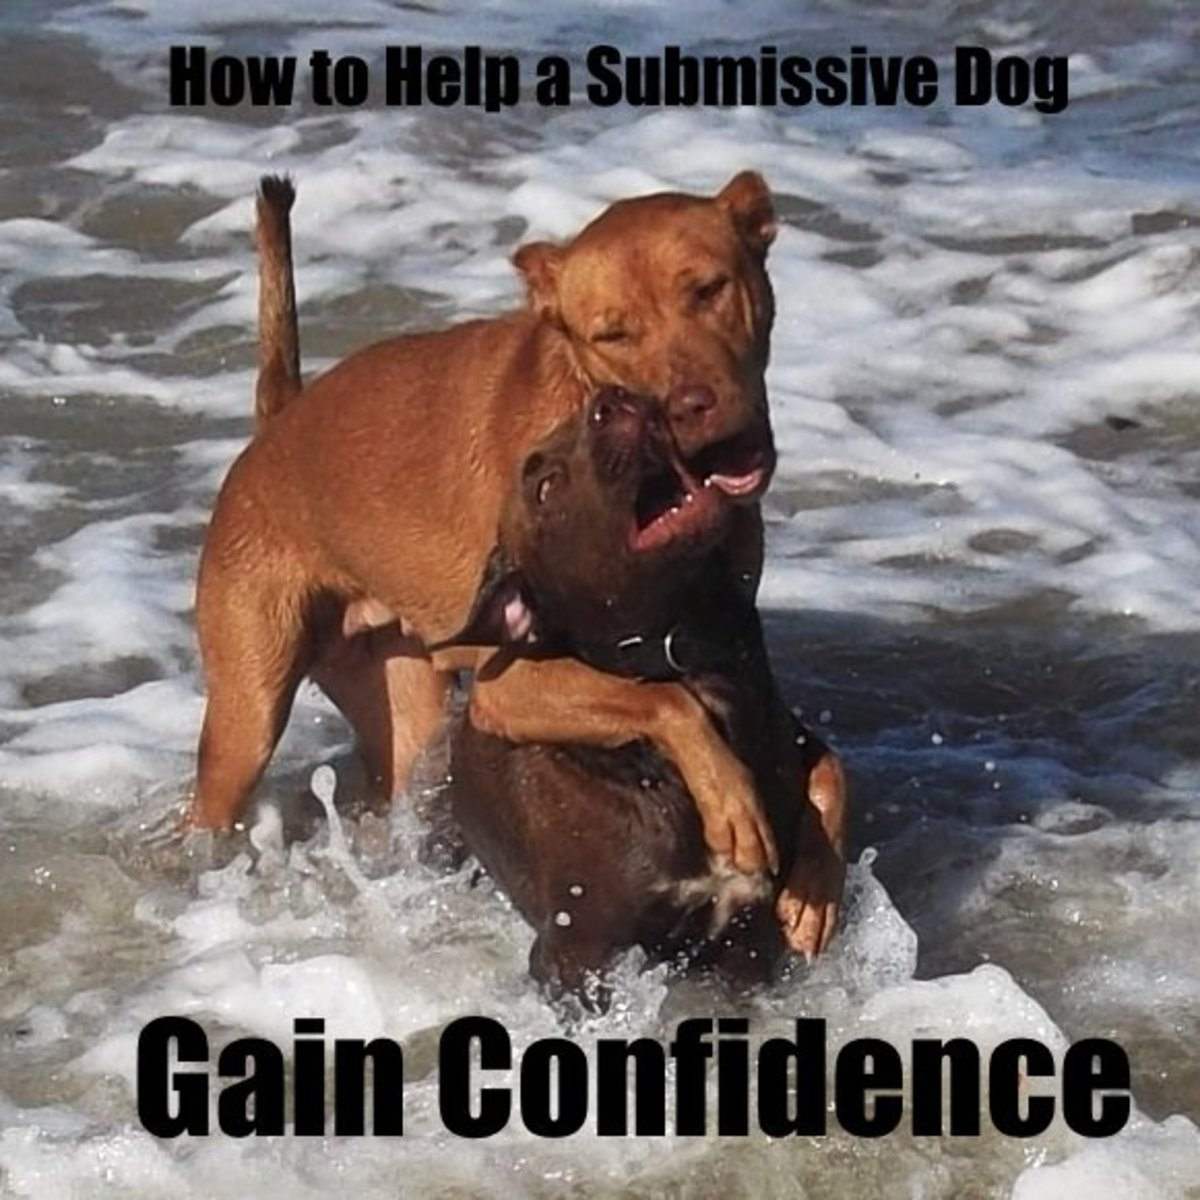 How to help a submissive dog build confidence.